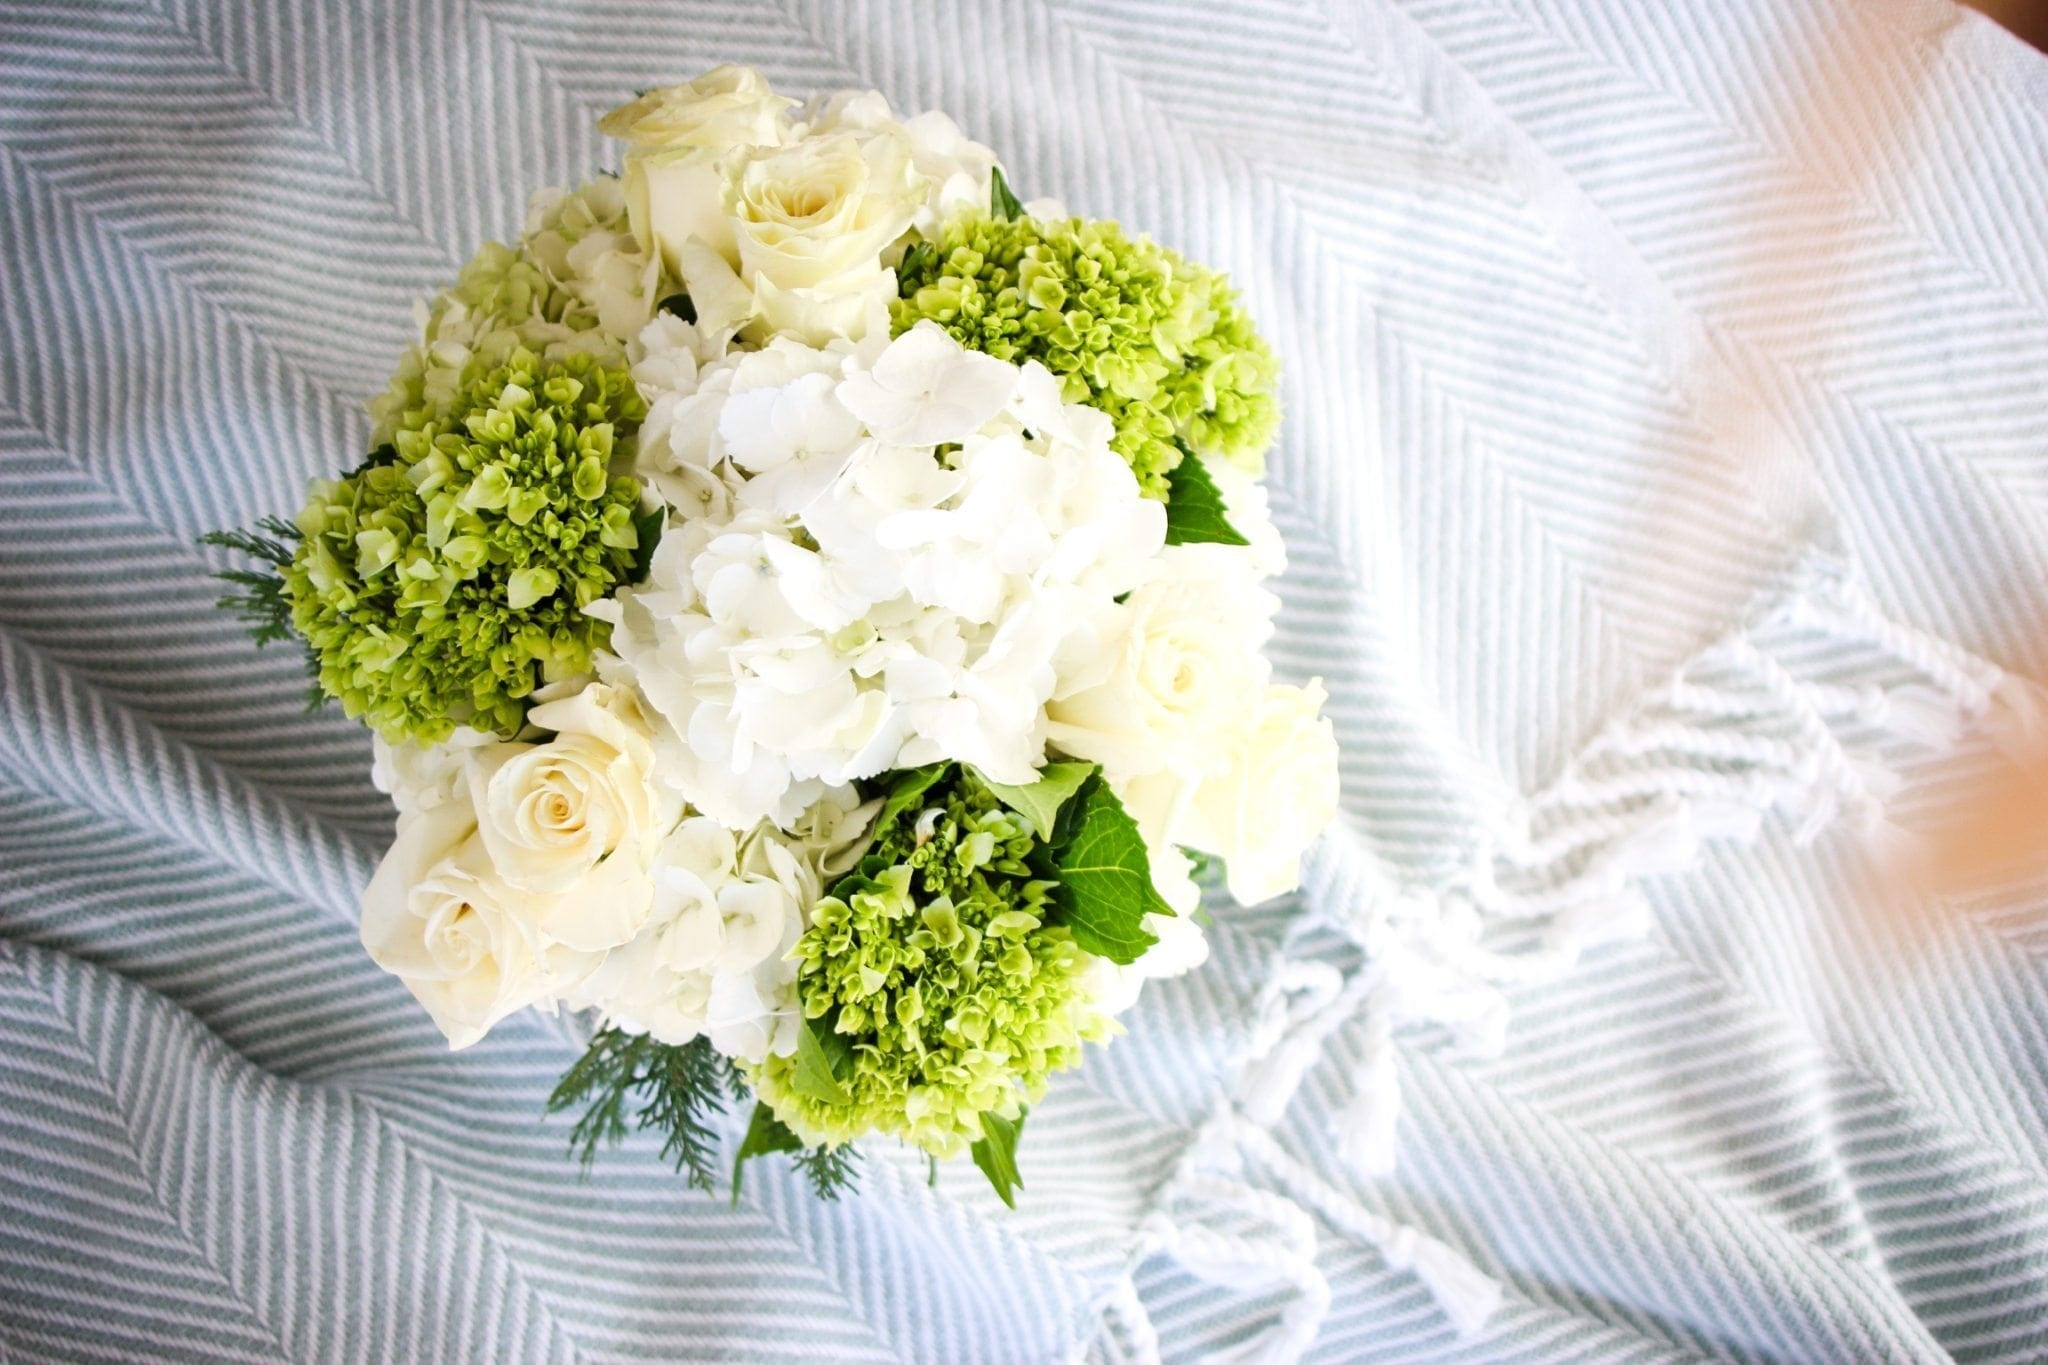 White and green hydrangea flower bouquet.